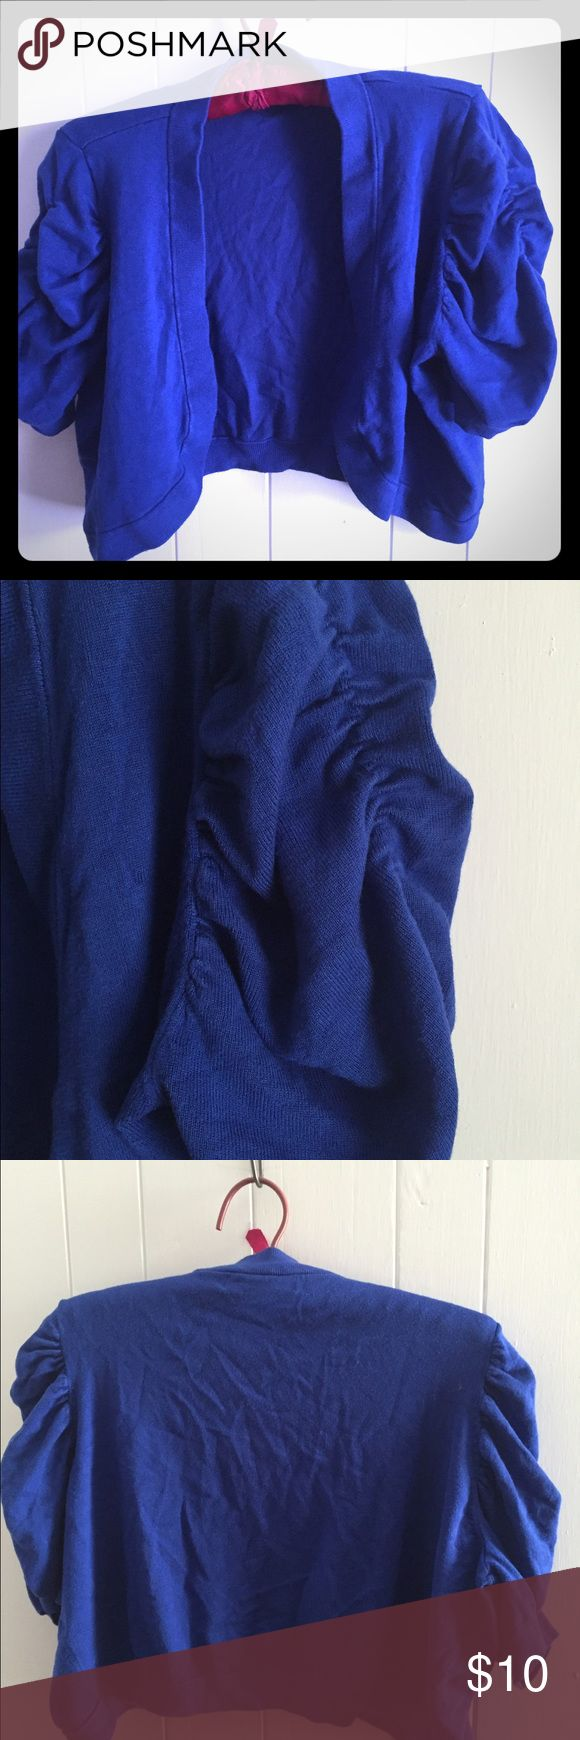 Macy's INC shrug blue 1x Macy's INC shrug in a very cool electric blue. 1x. Washed and worn once. Smoke free pet friendly home. INC International Concepts Sweaters Shrugs & Ponchos